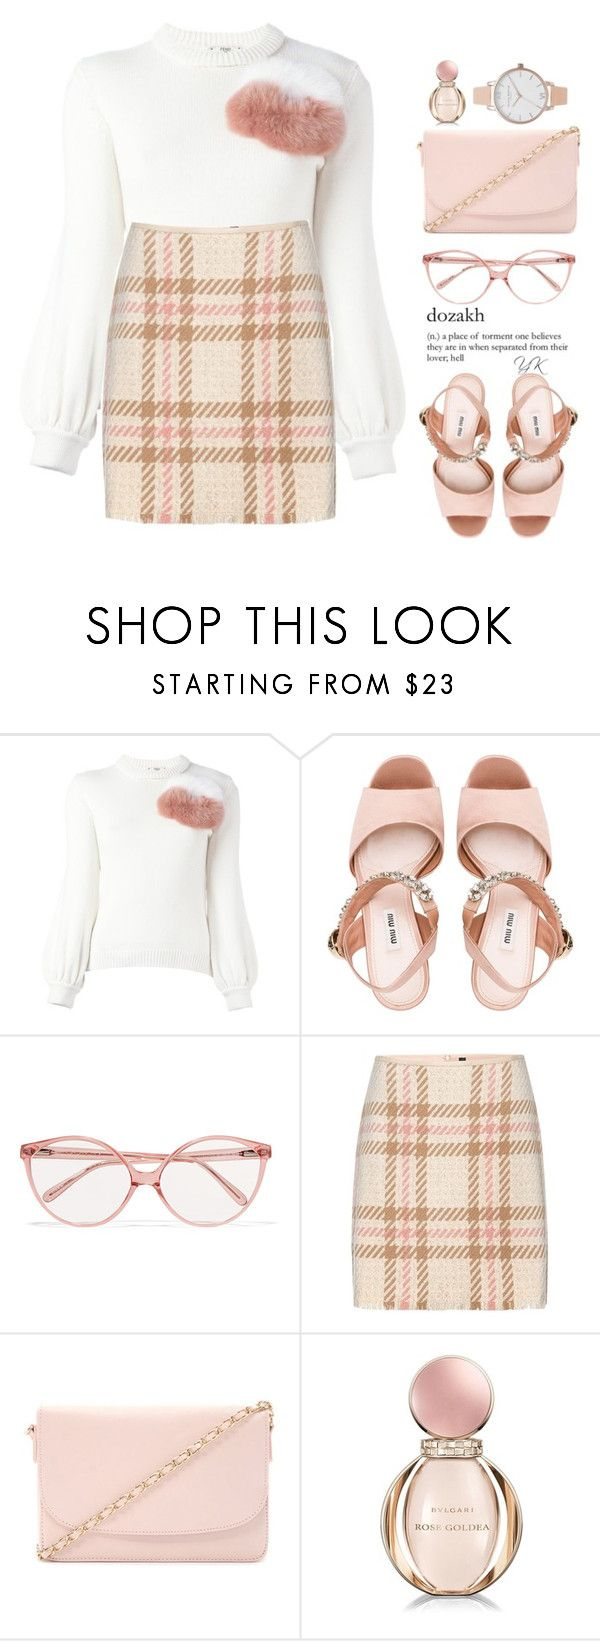 """""""Lush For Life"""" by youryulianna ❤ liked on Polyvore featuring Fendi, Miu Miu, Prism, MARC CAIN, Forever 21, Bulgari and Olivia Burton"""